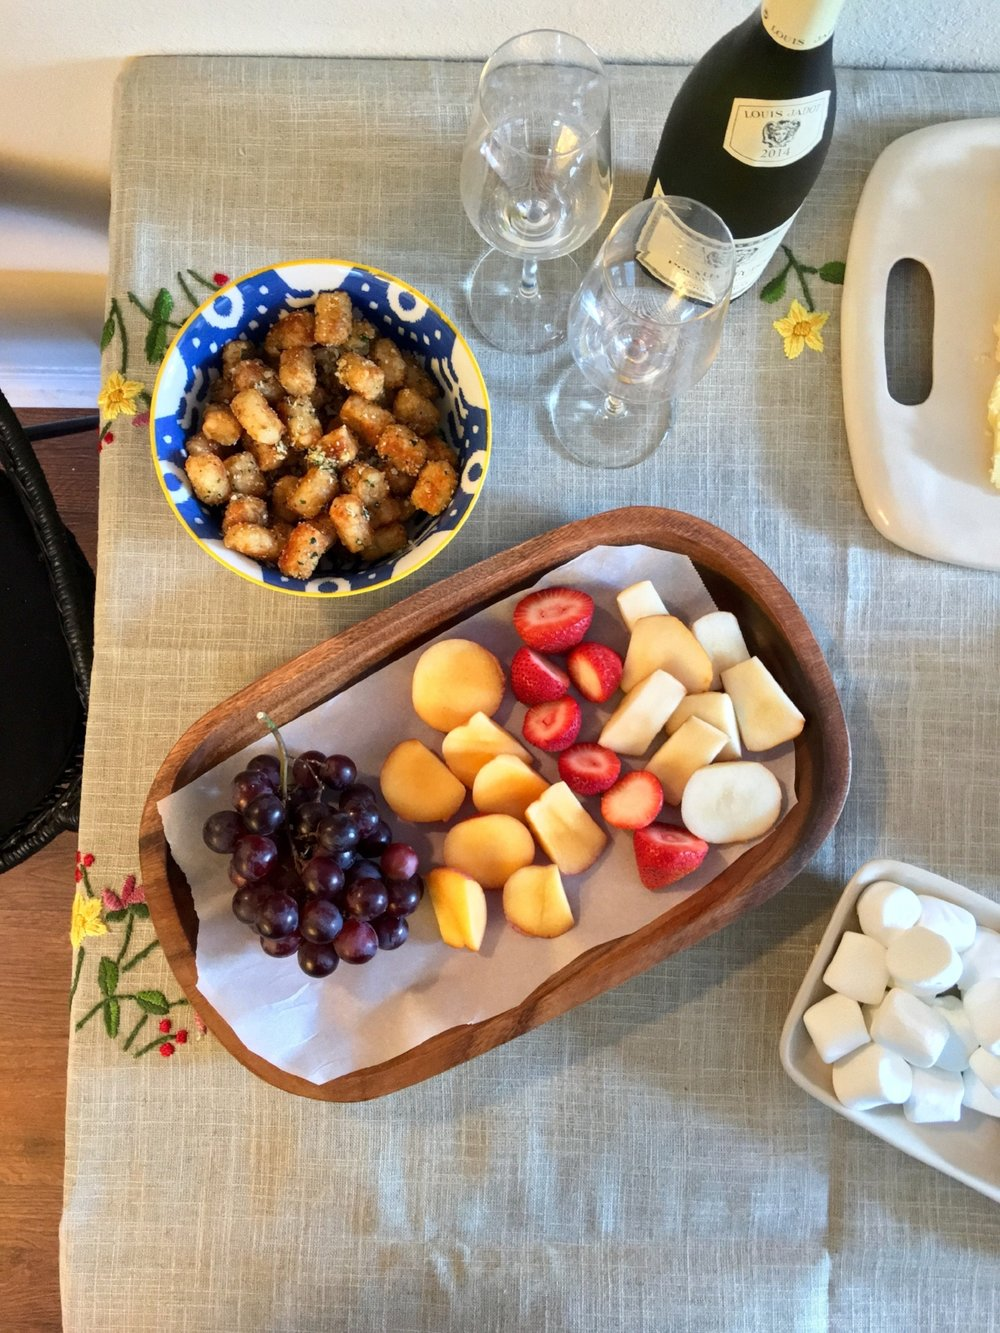 Yummy truffle tots and a big fruit platter. Kurt included sliced peaches, pears, strawberries and grapes.